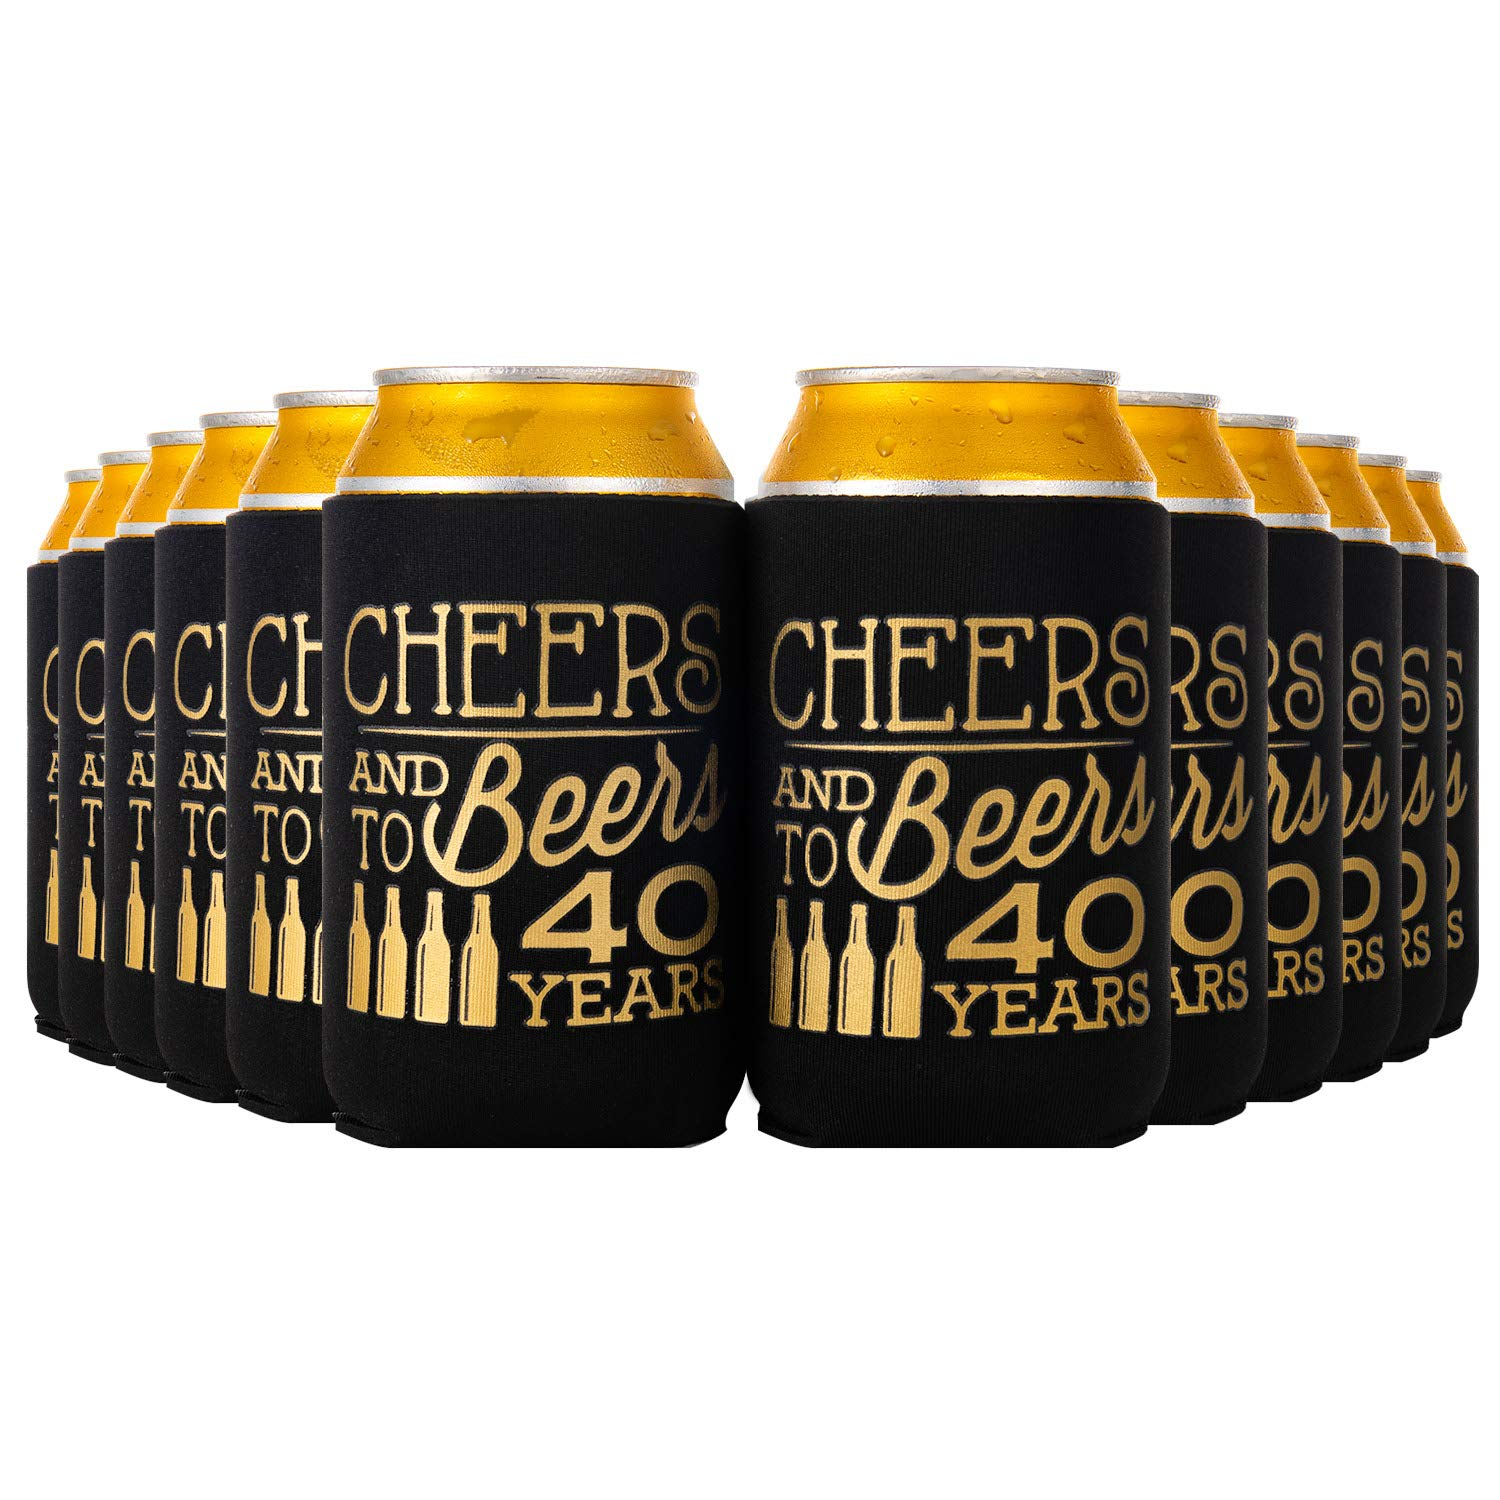 Crisky 40th Birthday Beer Sleeve,Cheers and Beers to 40 Years Birthday Decoration Party Favor Can Covers, 12-Ounce Neoprene Coolers for Soda, Beer, Can Beverage, 12 Pcs